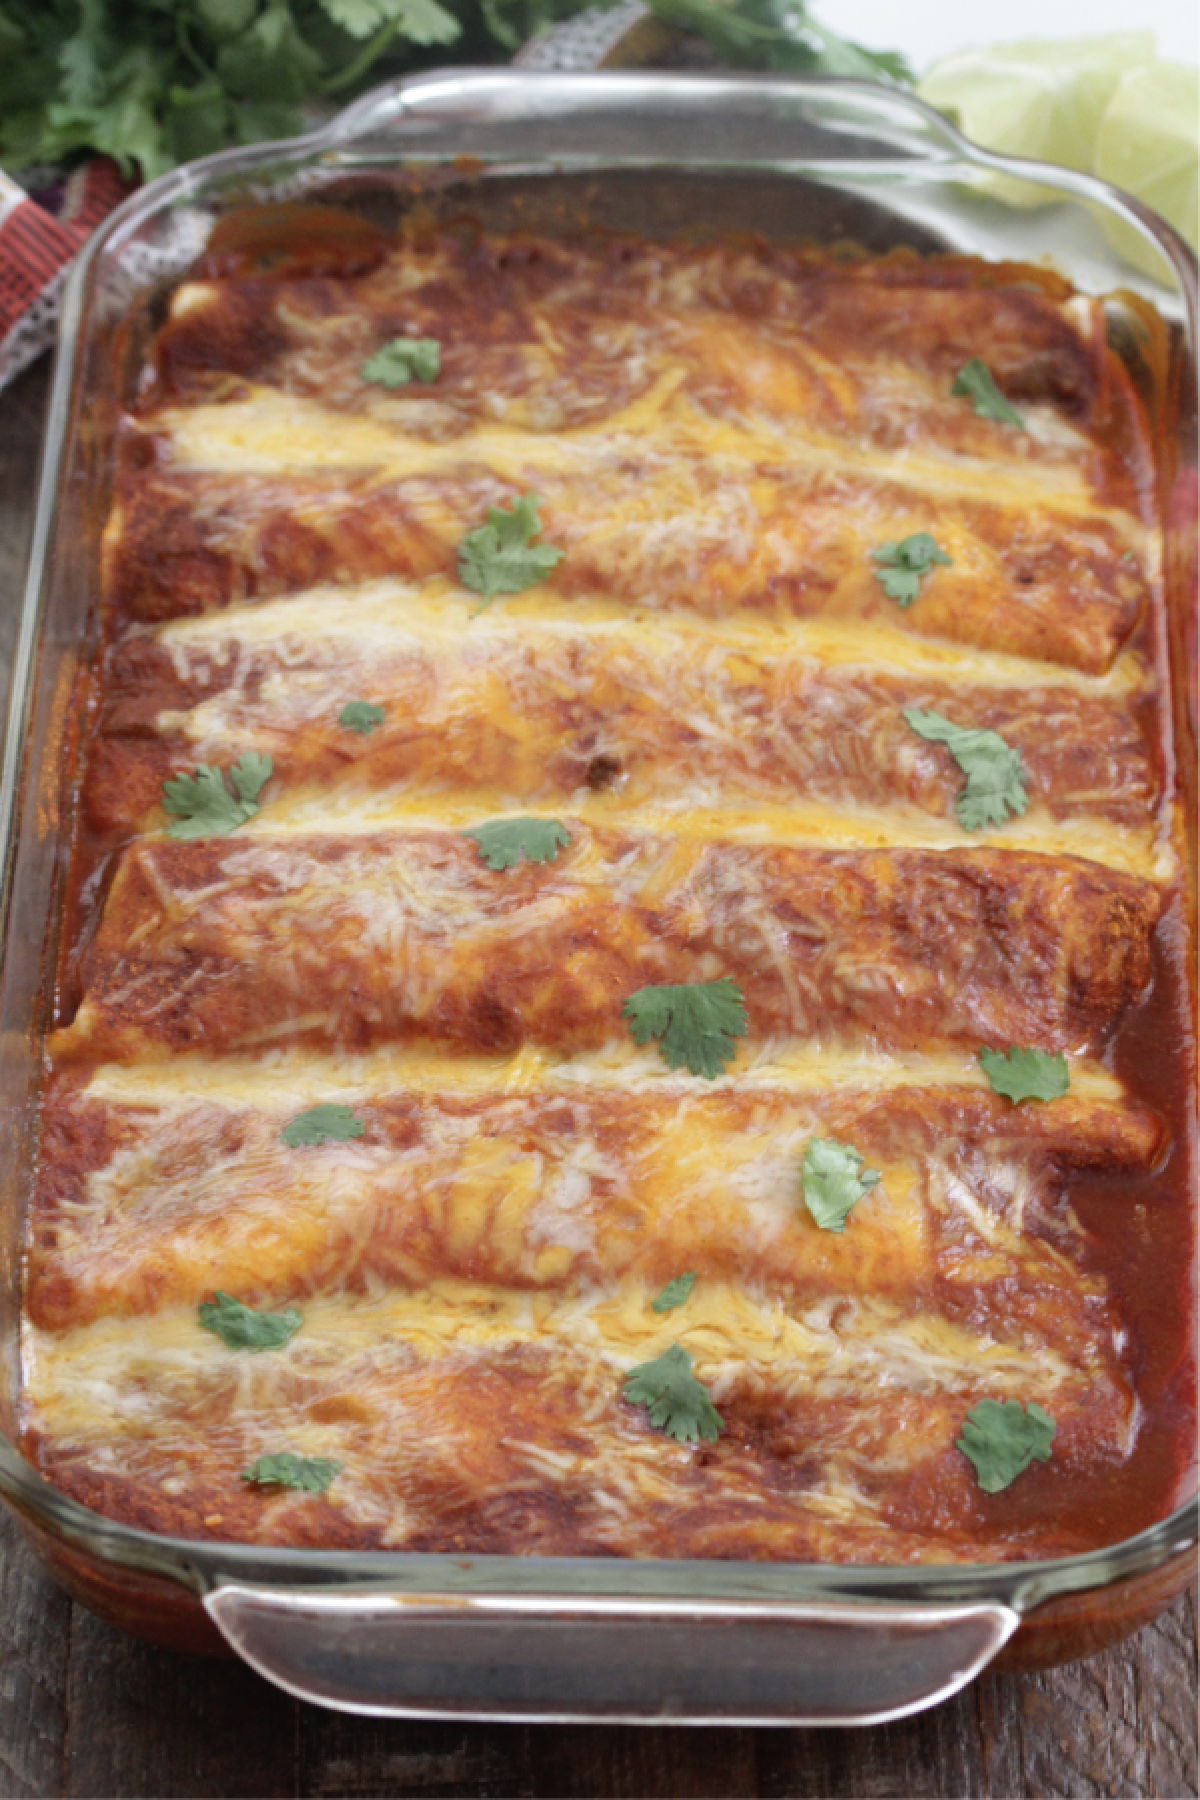 Spicy Beef Enchiladas in a baking dish with cheese on top